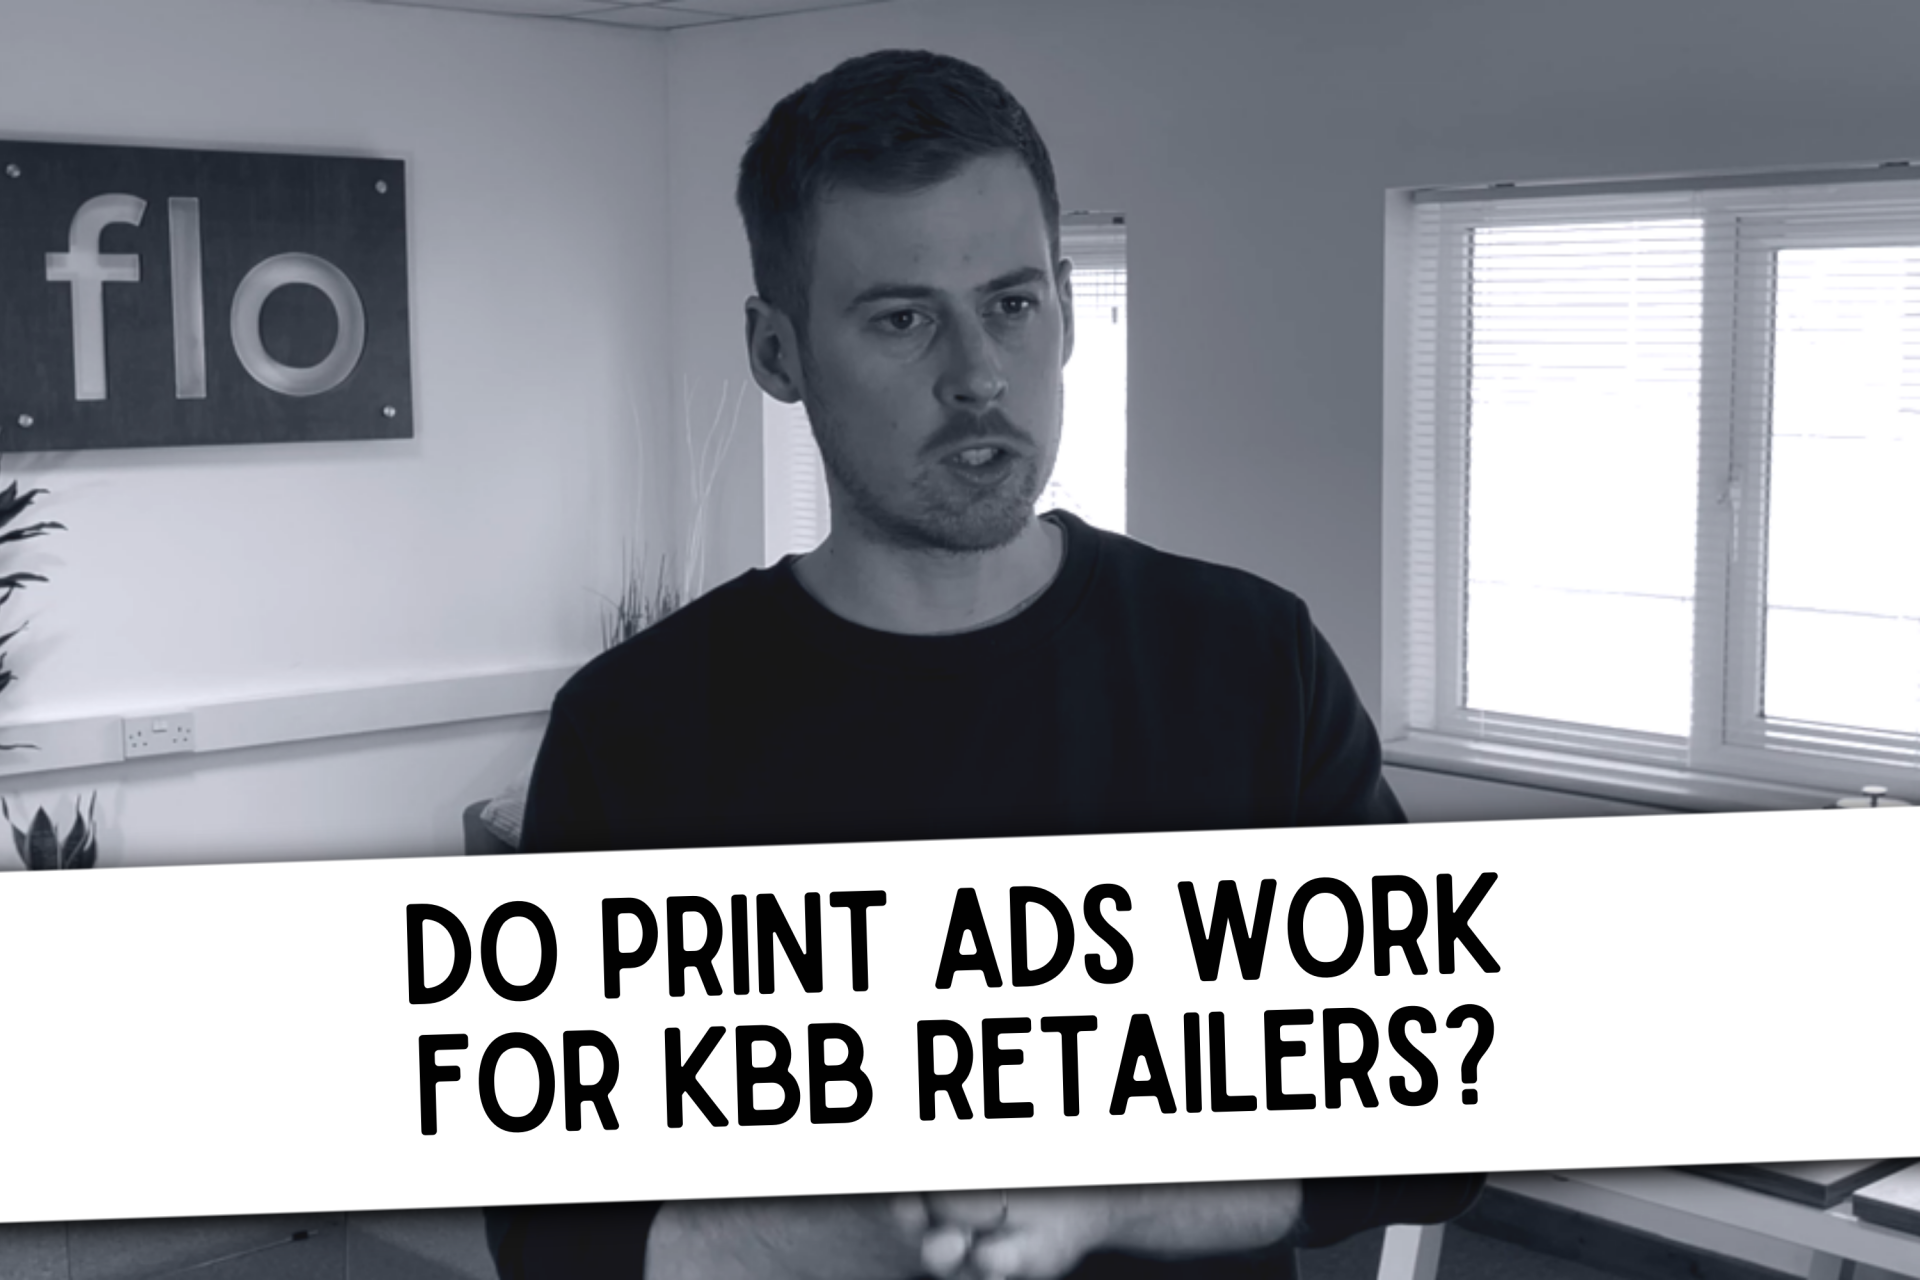 Do print ads work for KBB retailers